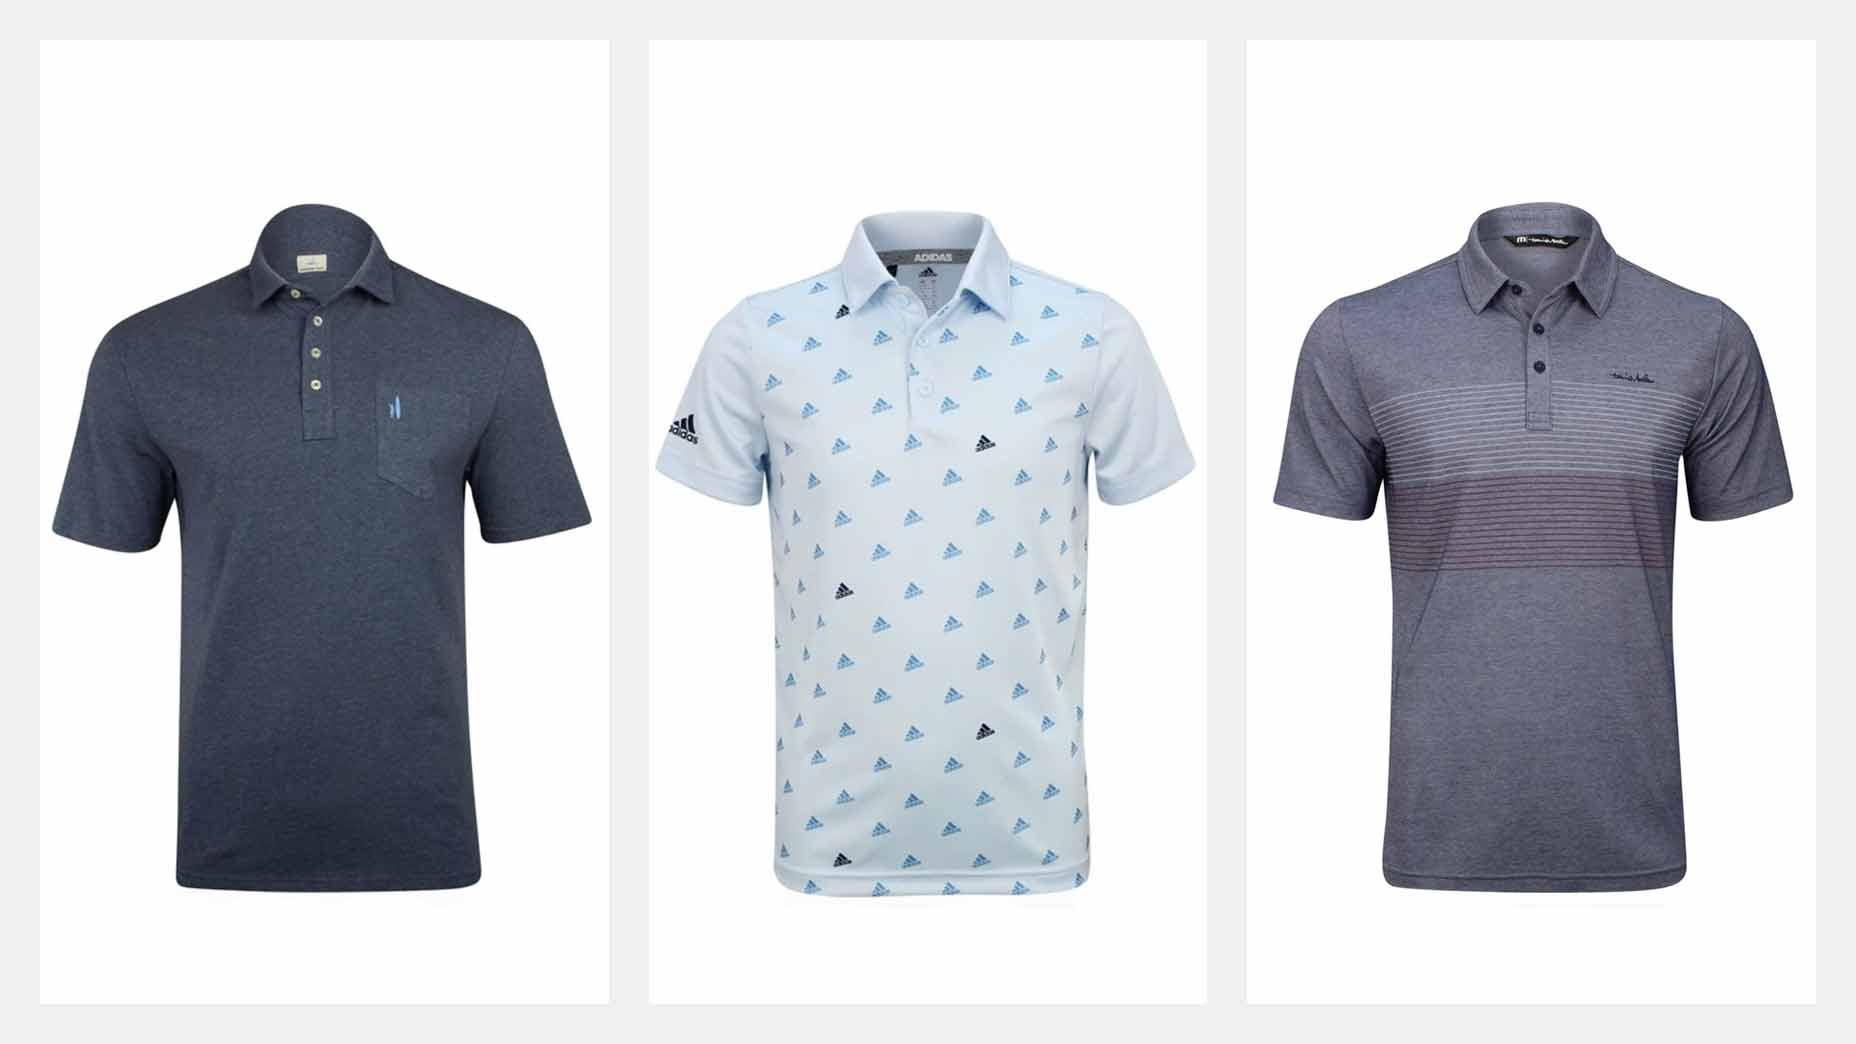 Best golf shirts for the holidays.